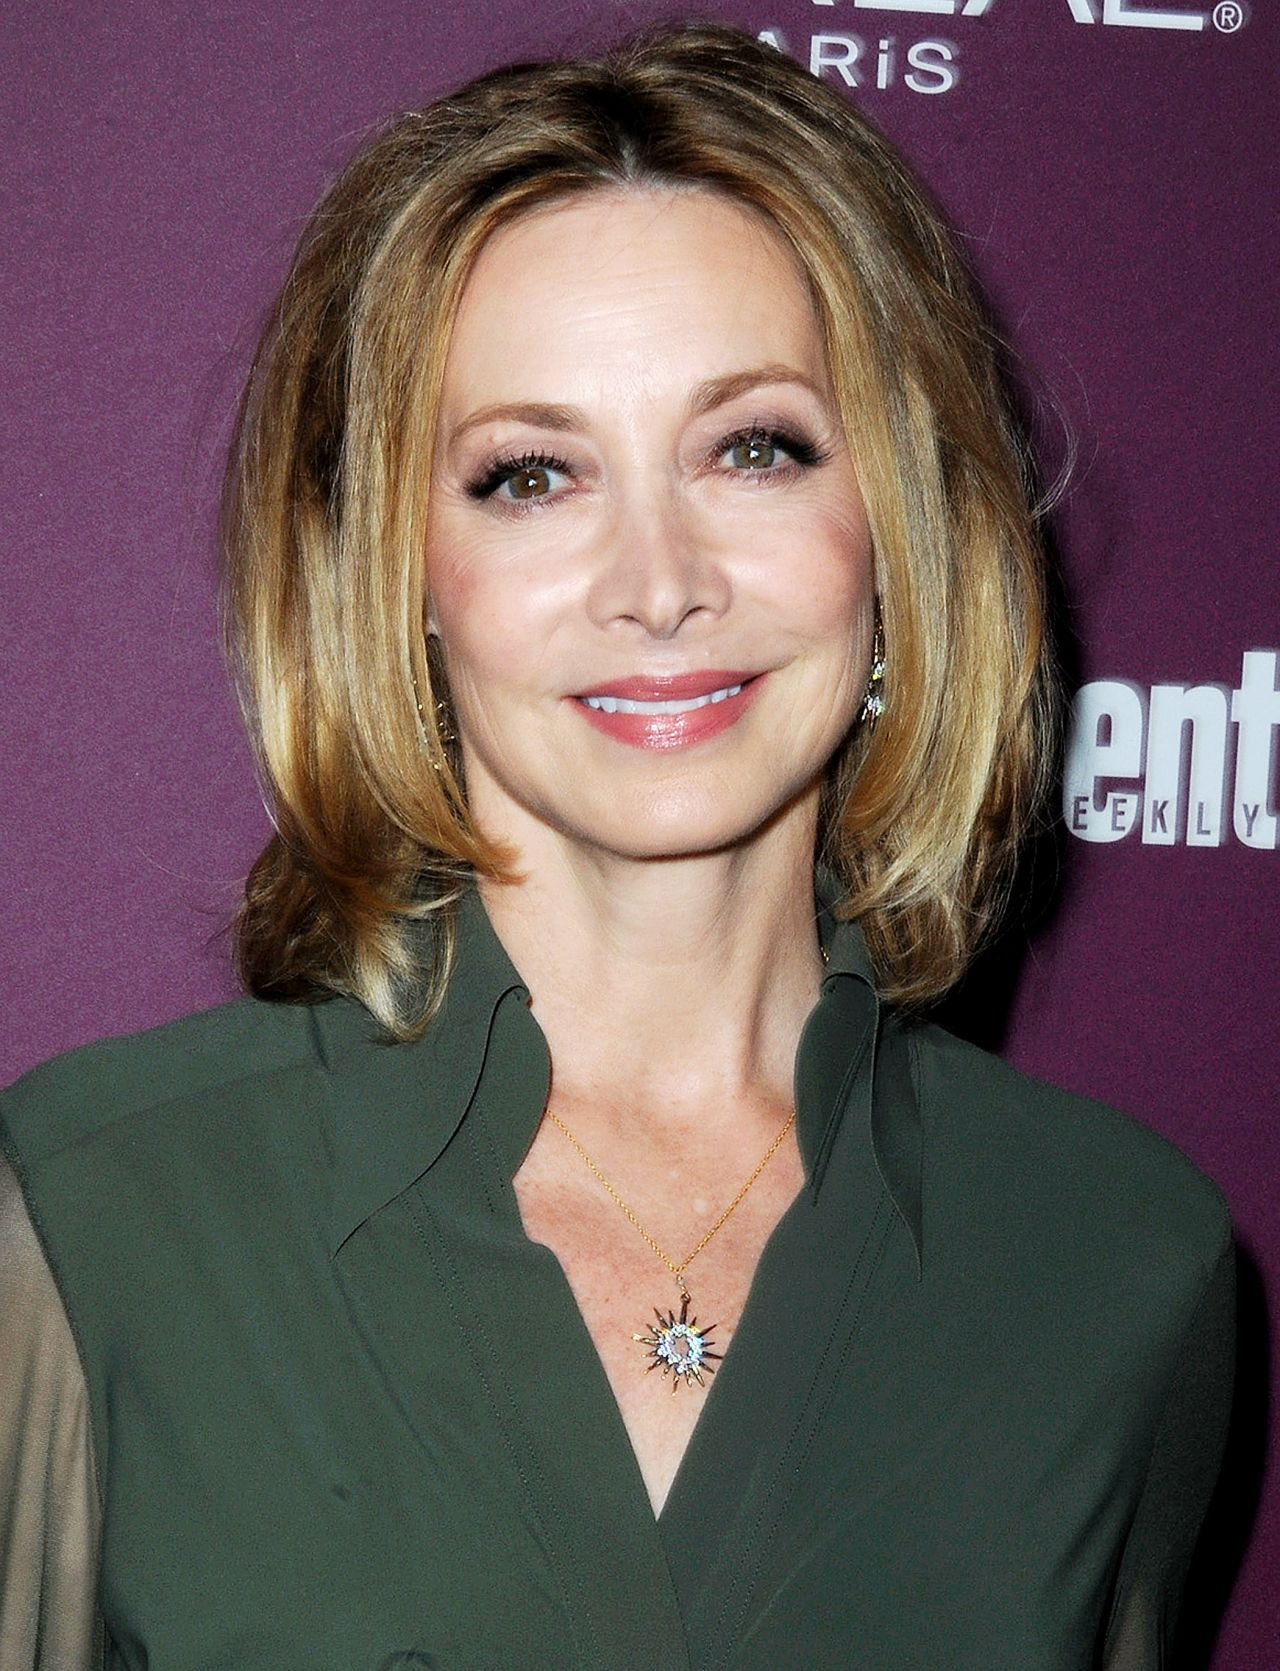 pin by maty cise on sharon lawrence | sharon lawrence, female